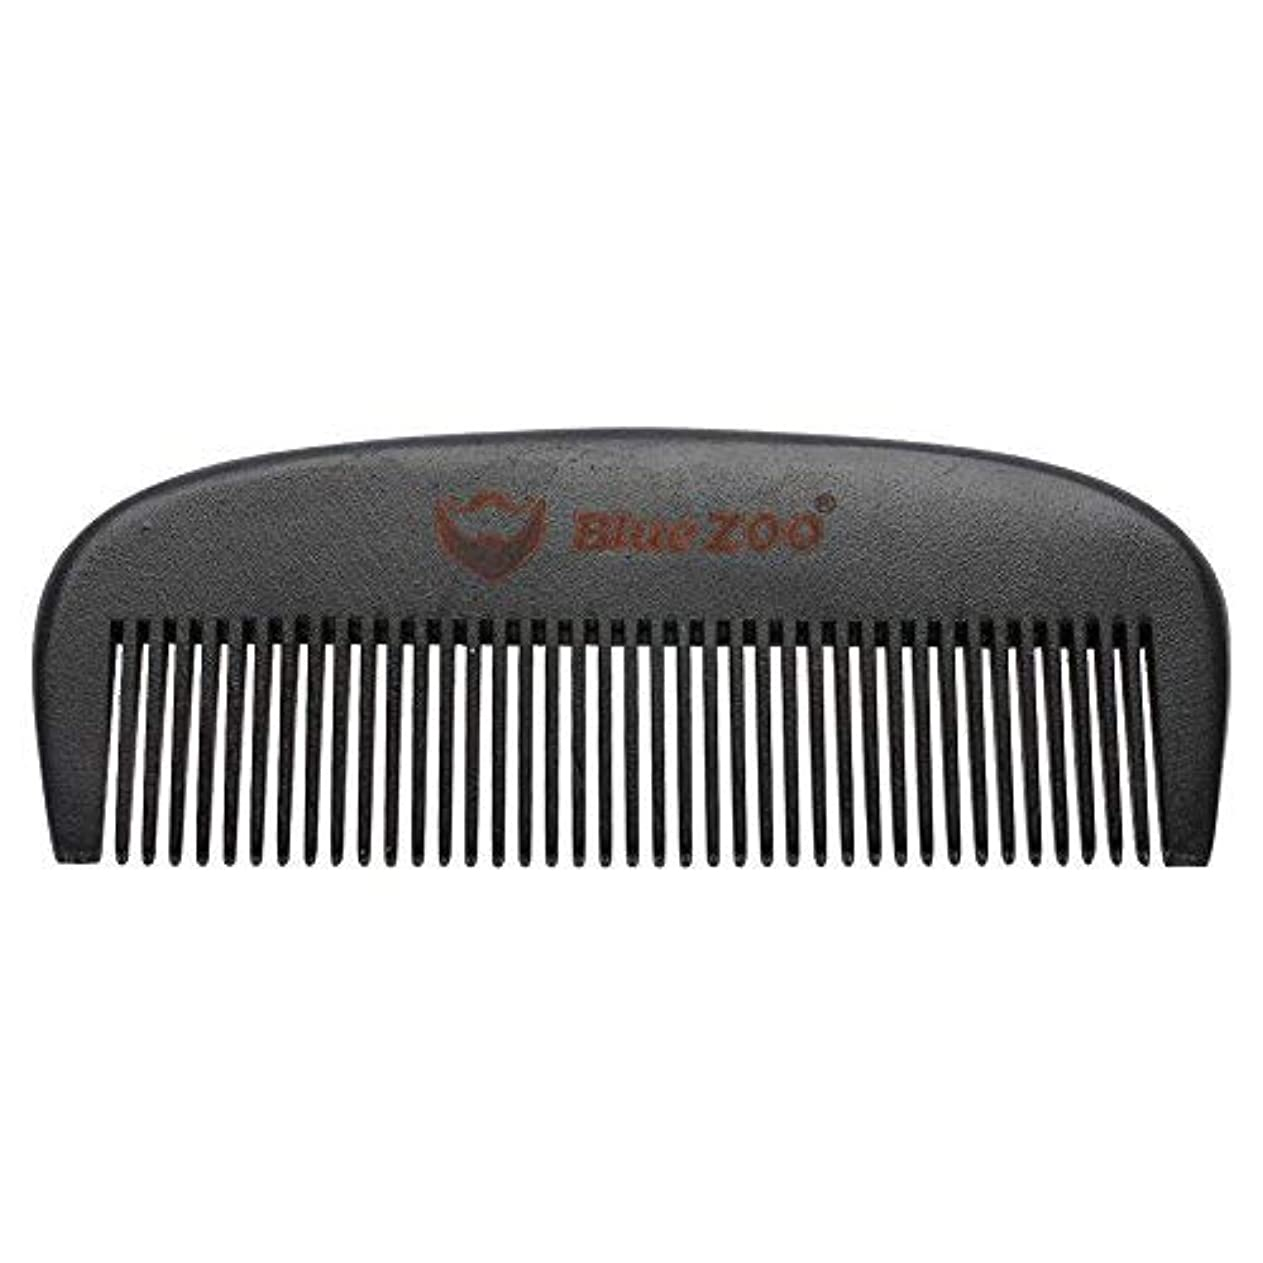 学校教育海洋リーダーシップMens Beard Comb Natural Wooden Moustache Hair Health Care Combing Black Pear Wood Anti-static Fine Wide Tooth Hairbrush Shape Tools [並行輸入品]